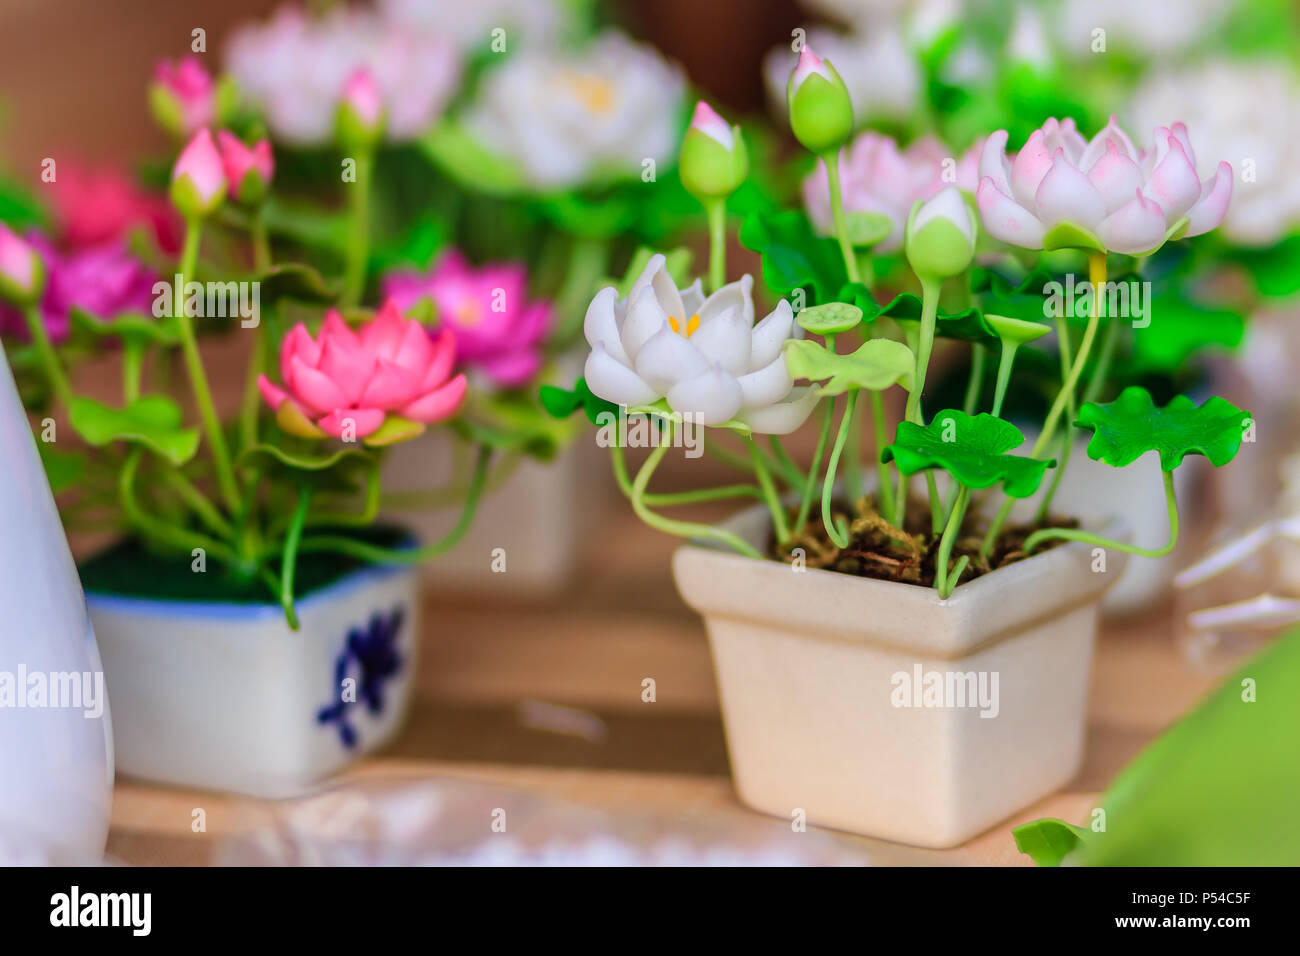 Cute Artificial Pink Lotus Flowers Or Water Lily Artificial Lotus